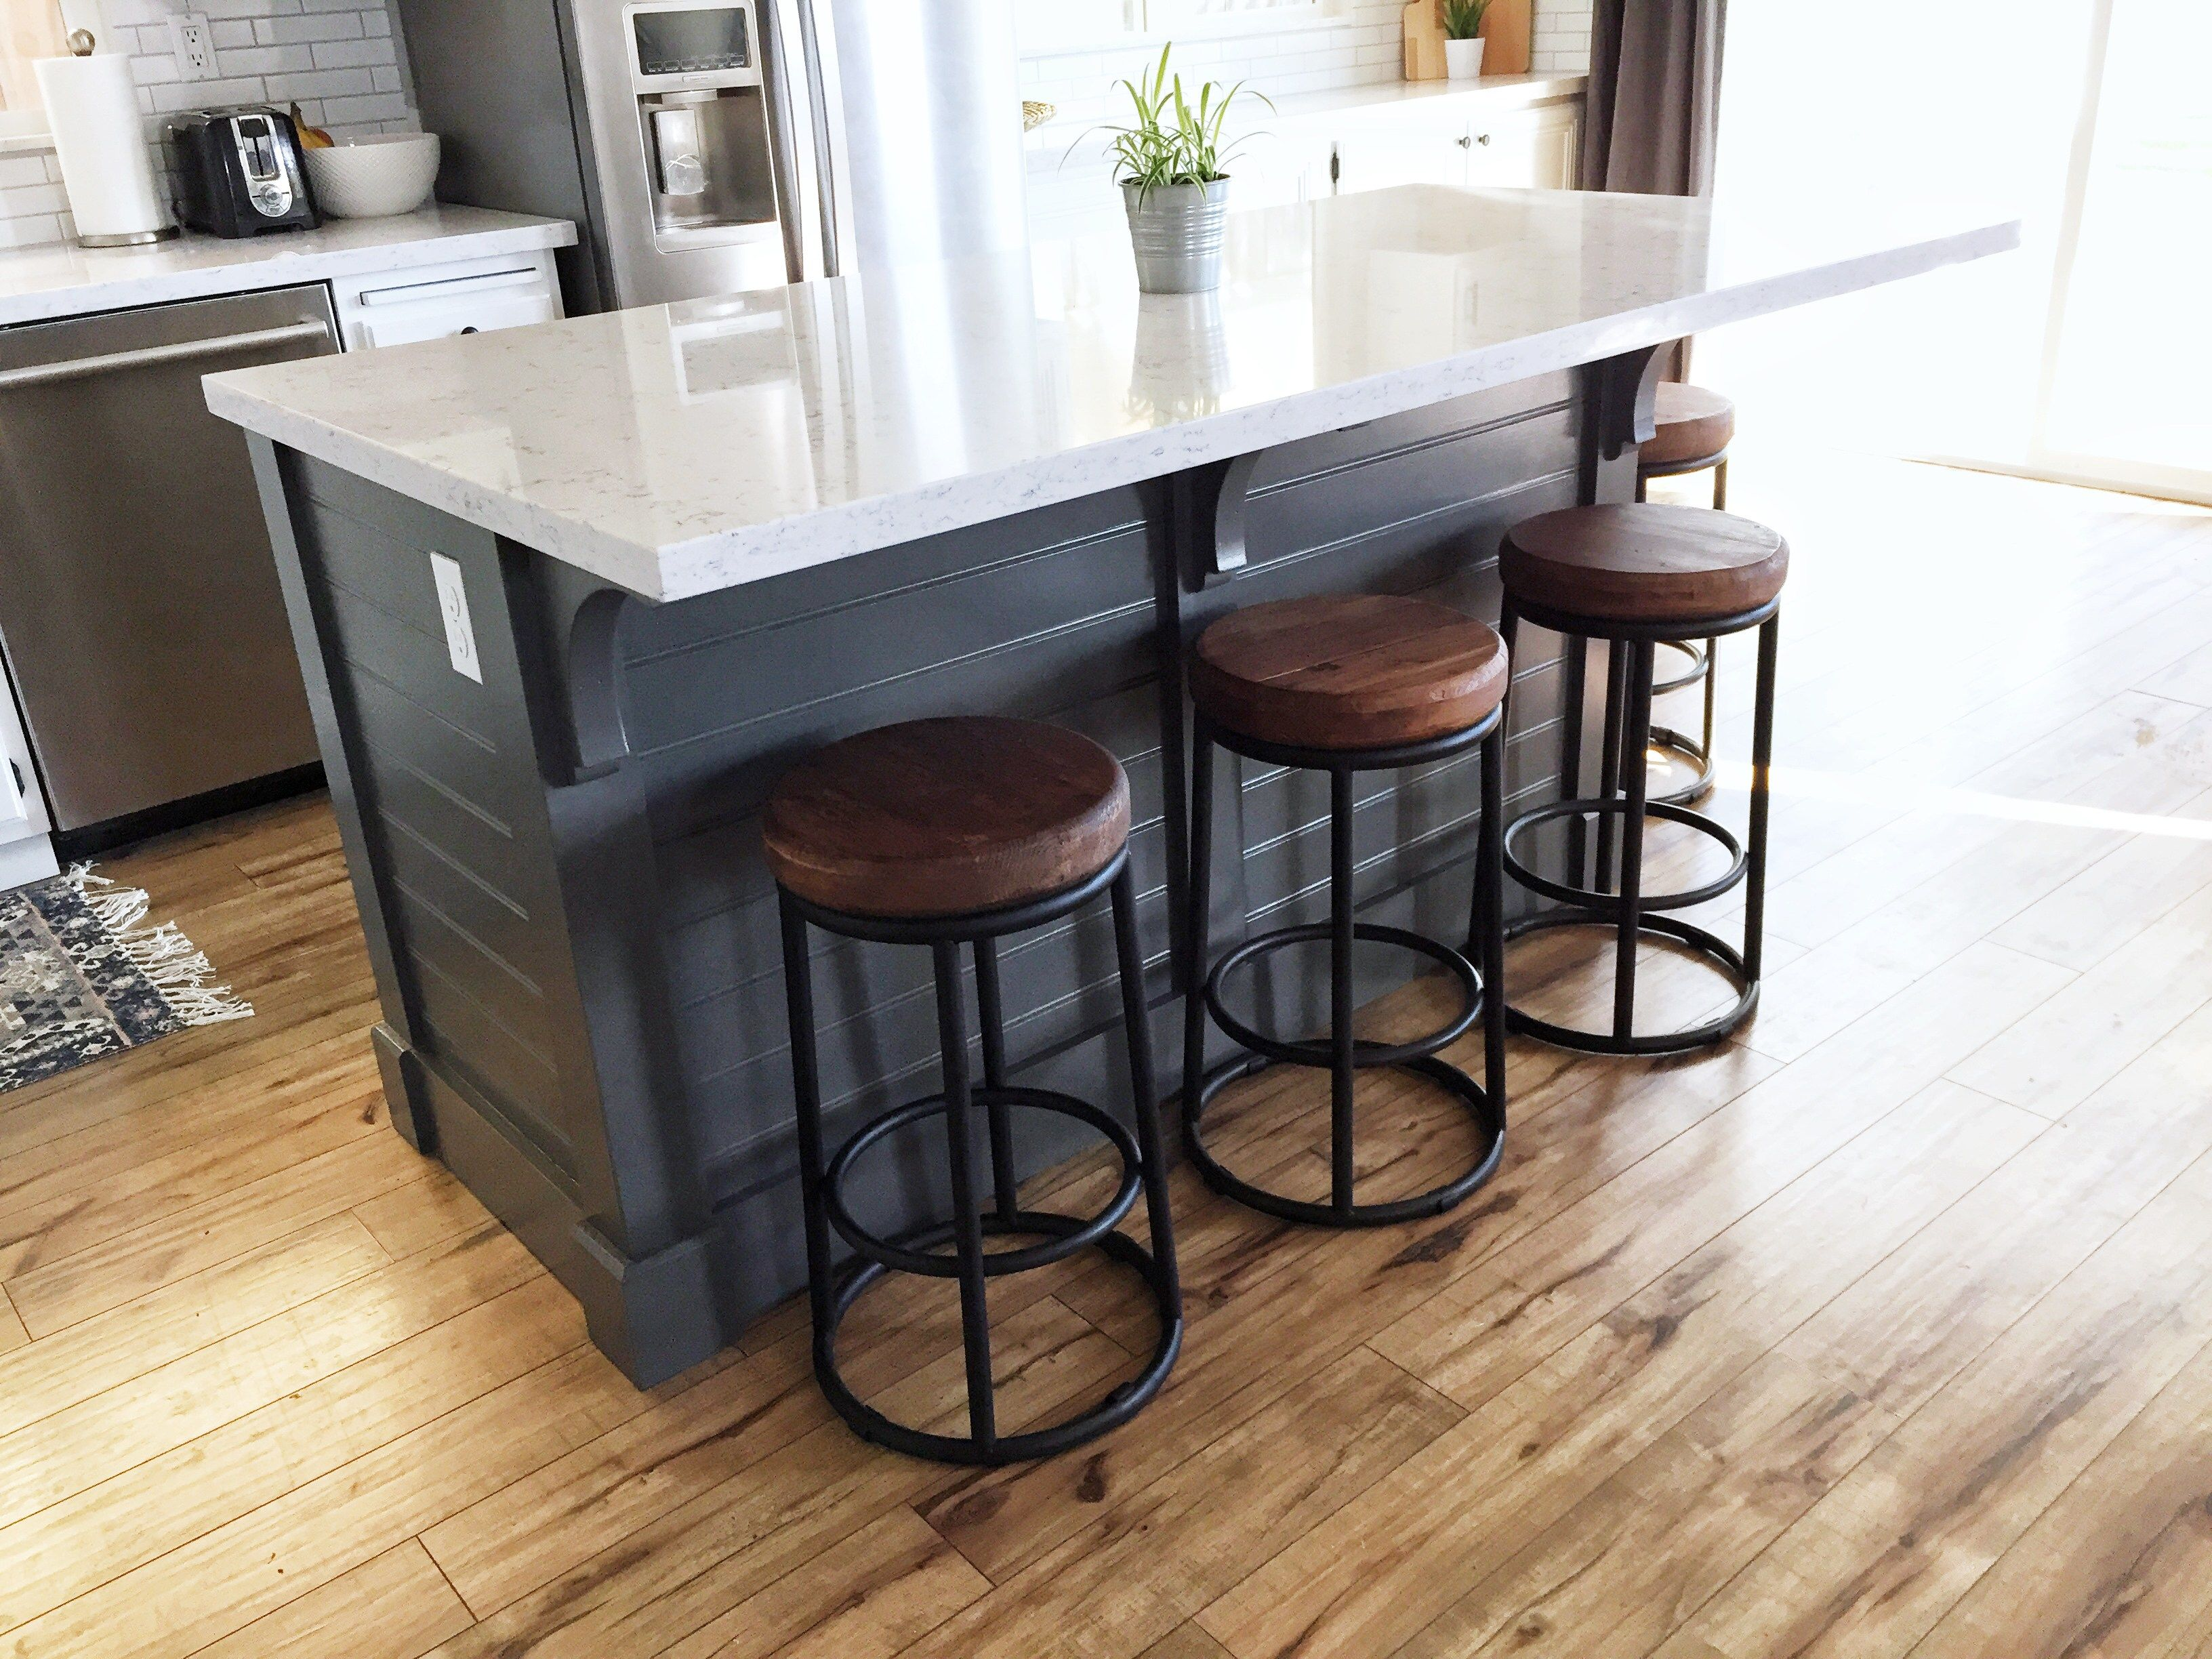 a diy kitchen island make it yourself and save big domestic blonde kitchen island decor on kitchen island ideas eat in id=51914